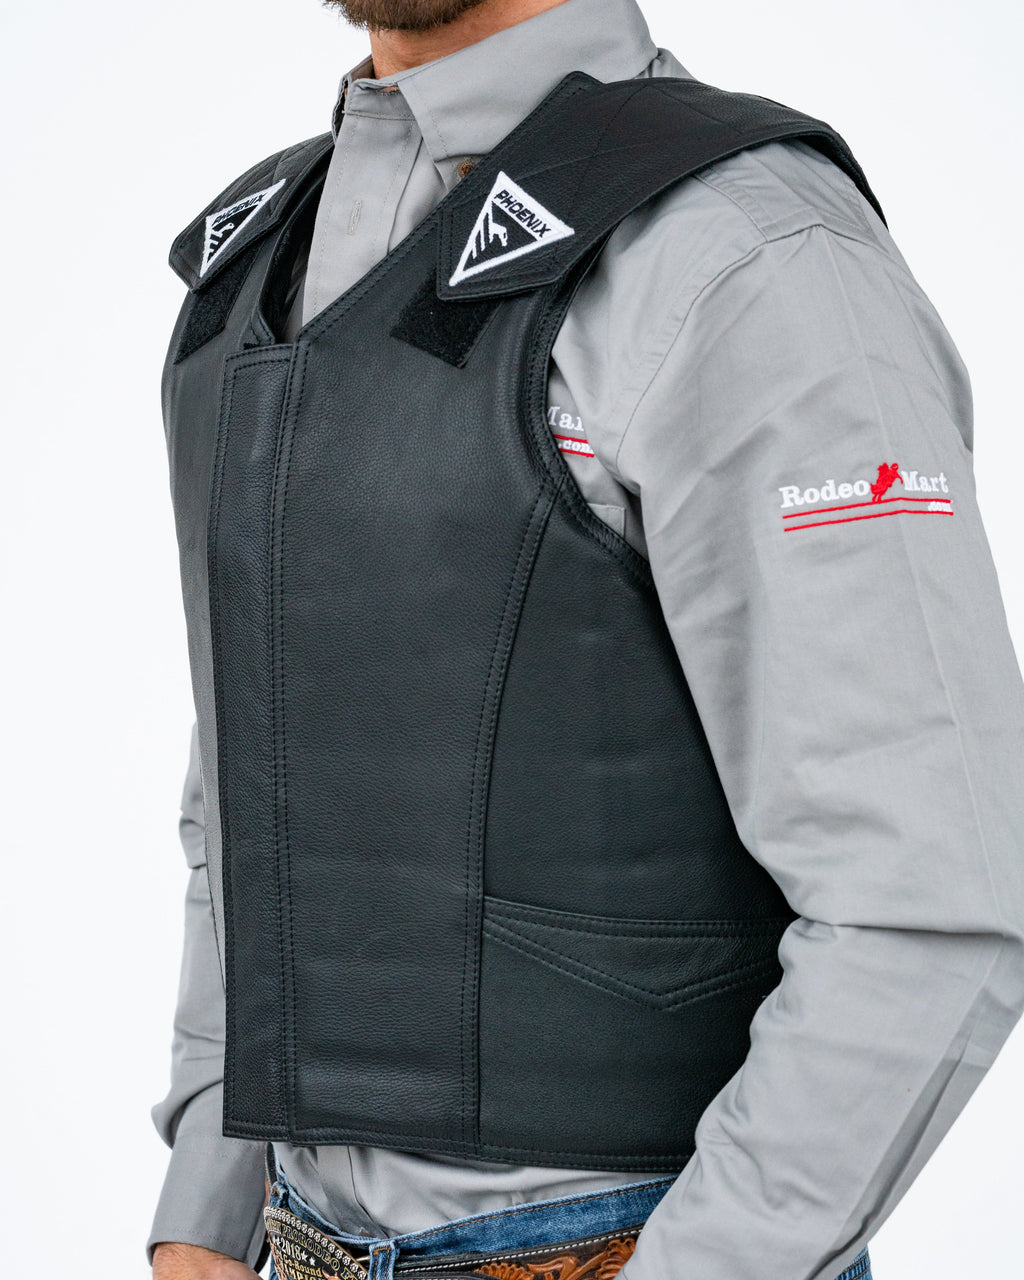 2020 Phoenix Pro Max Adult Rodeo Vest Left Side